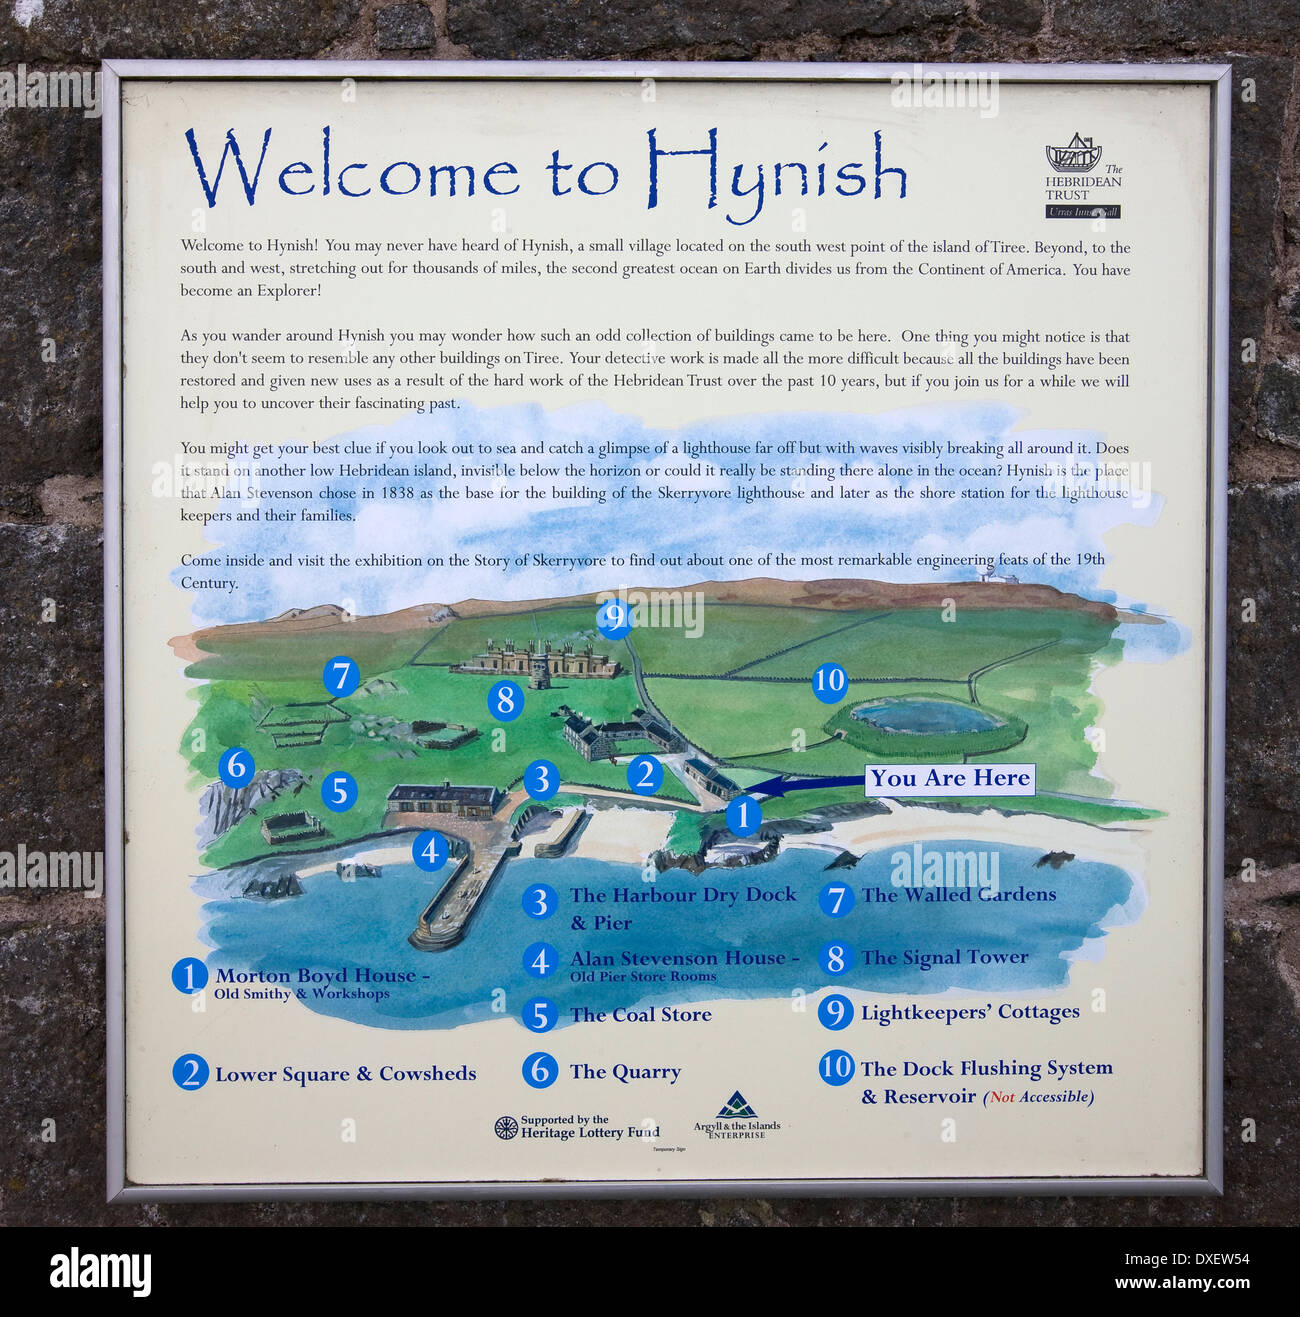 signpost and detailed map of Hynish on the island of Tiree.inner-hebrides. - Stock Image